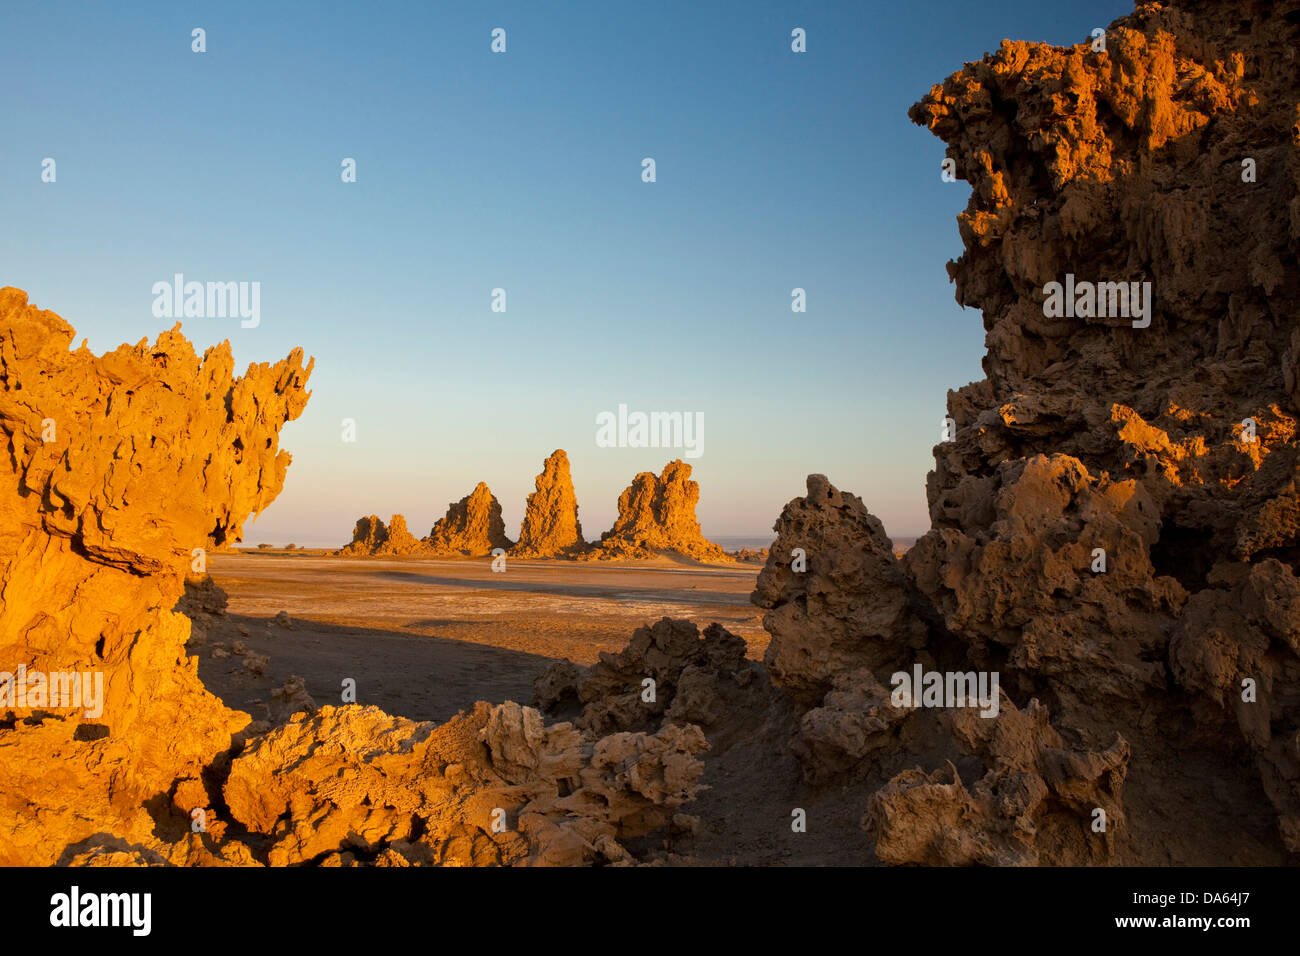 Lime chimneys, rocks, cliffs, cliff formation, rock, Abbesee, Djibouti, Africa, mountain, mountains, scenery, landscape, - Stock Image